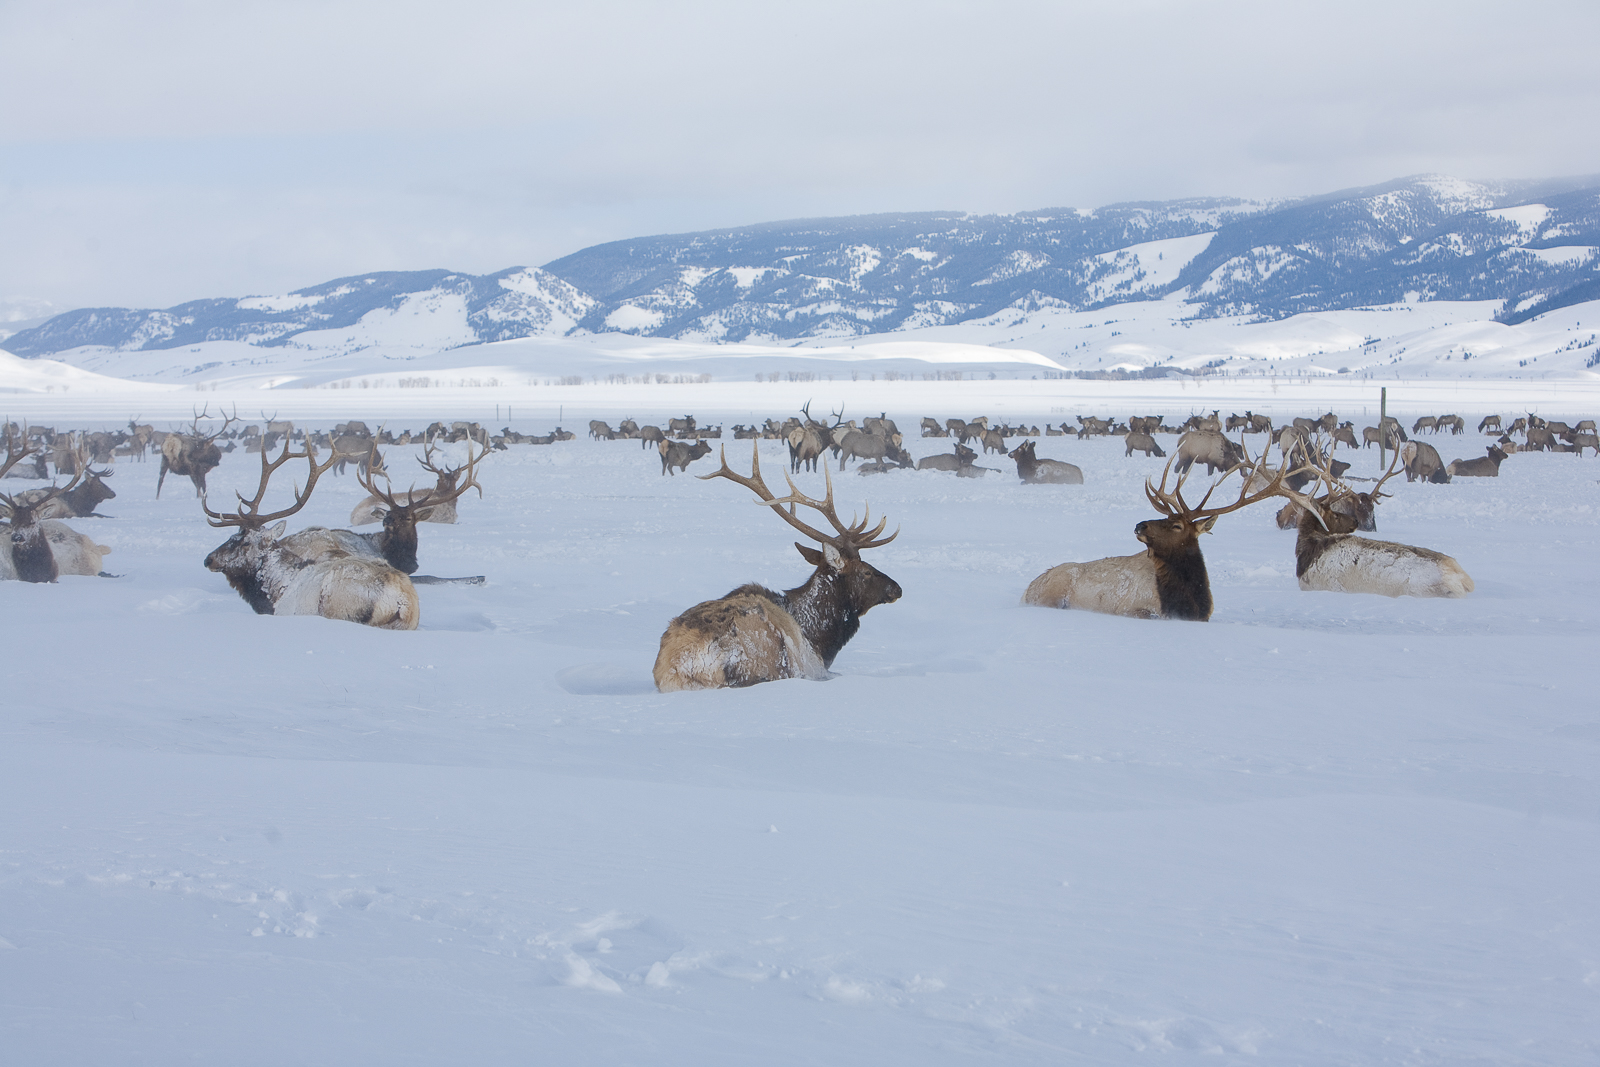 Hanging with the Guys,National Elk Refuge, Wyoming,cold,Winter,valley, elk, photo